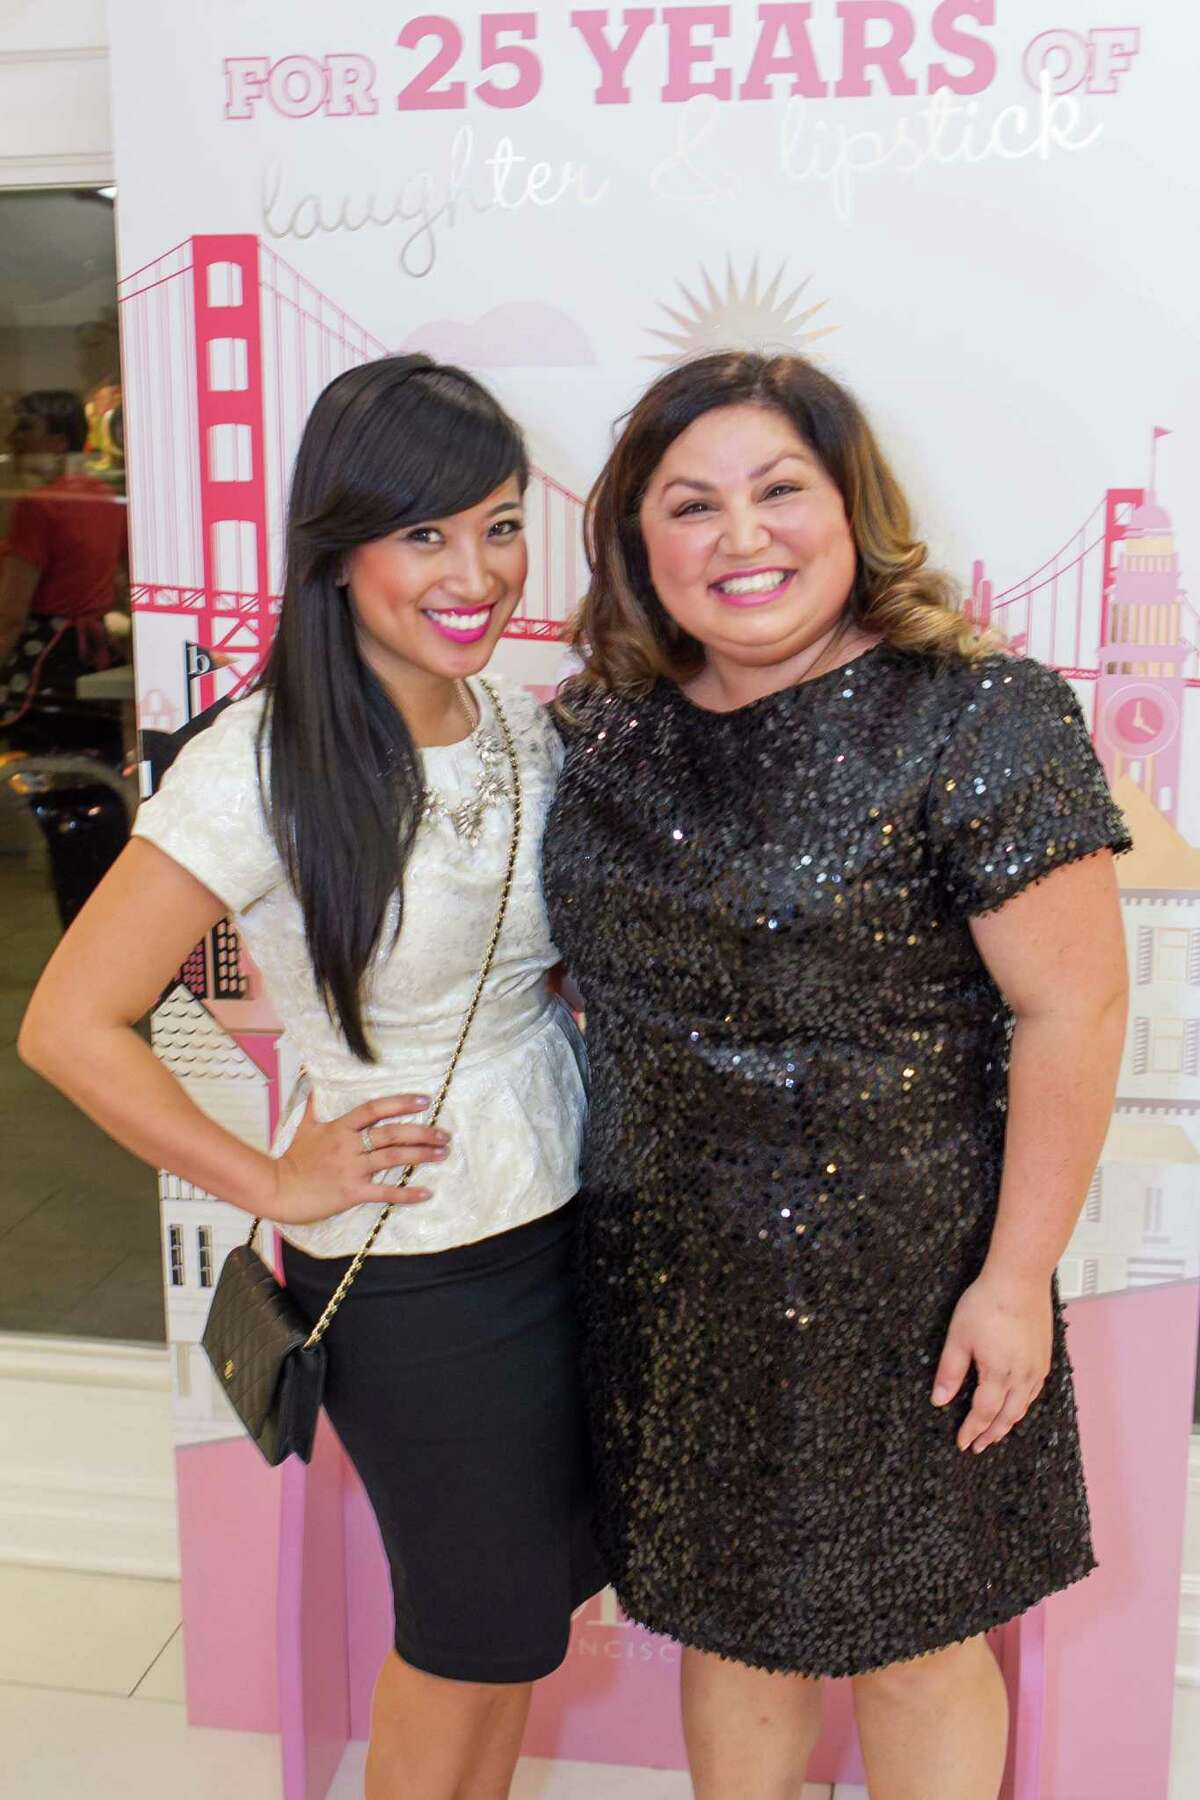 Monica Chieng and Michelle Avedissian at the 25th anniversary celebration for Benefit Cosmetics' San francisco stores.